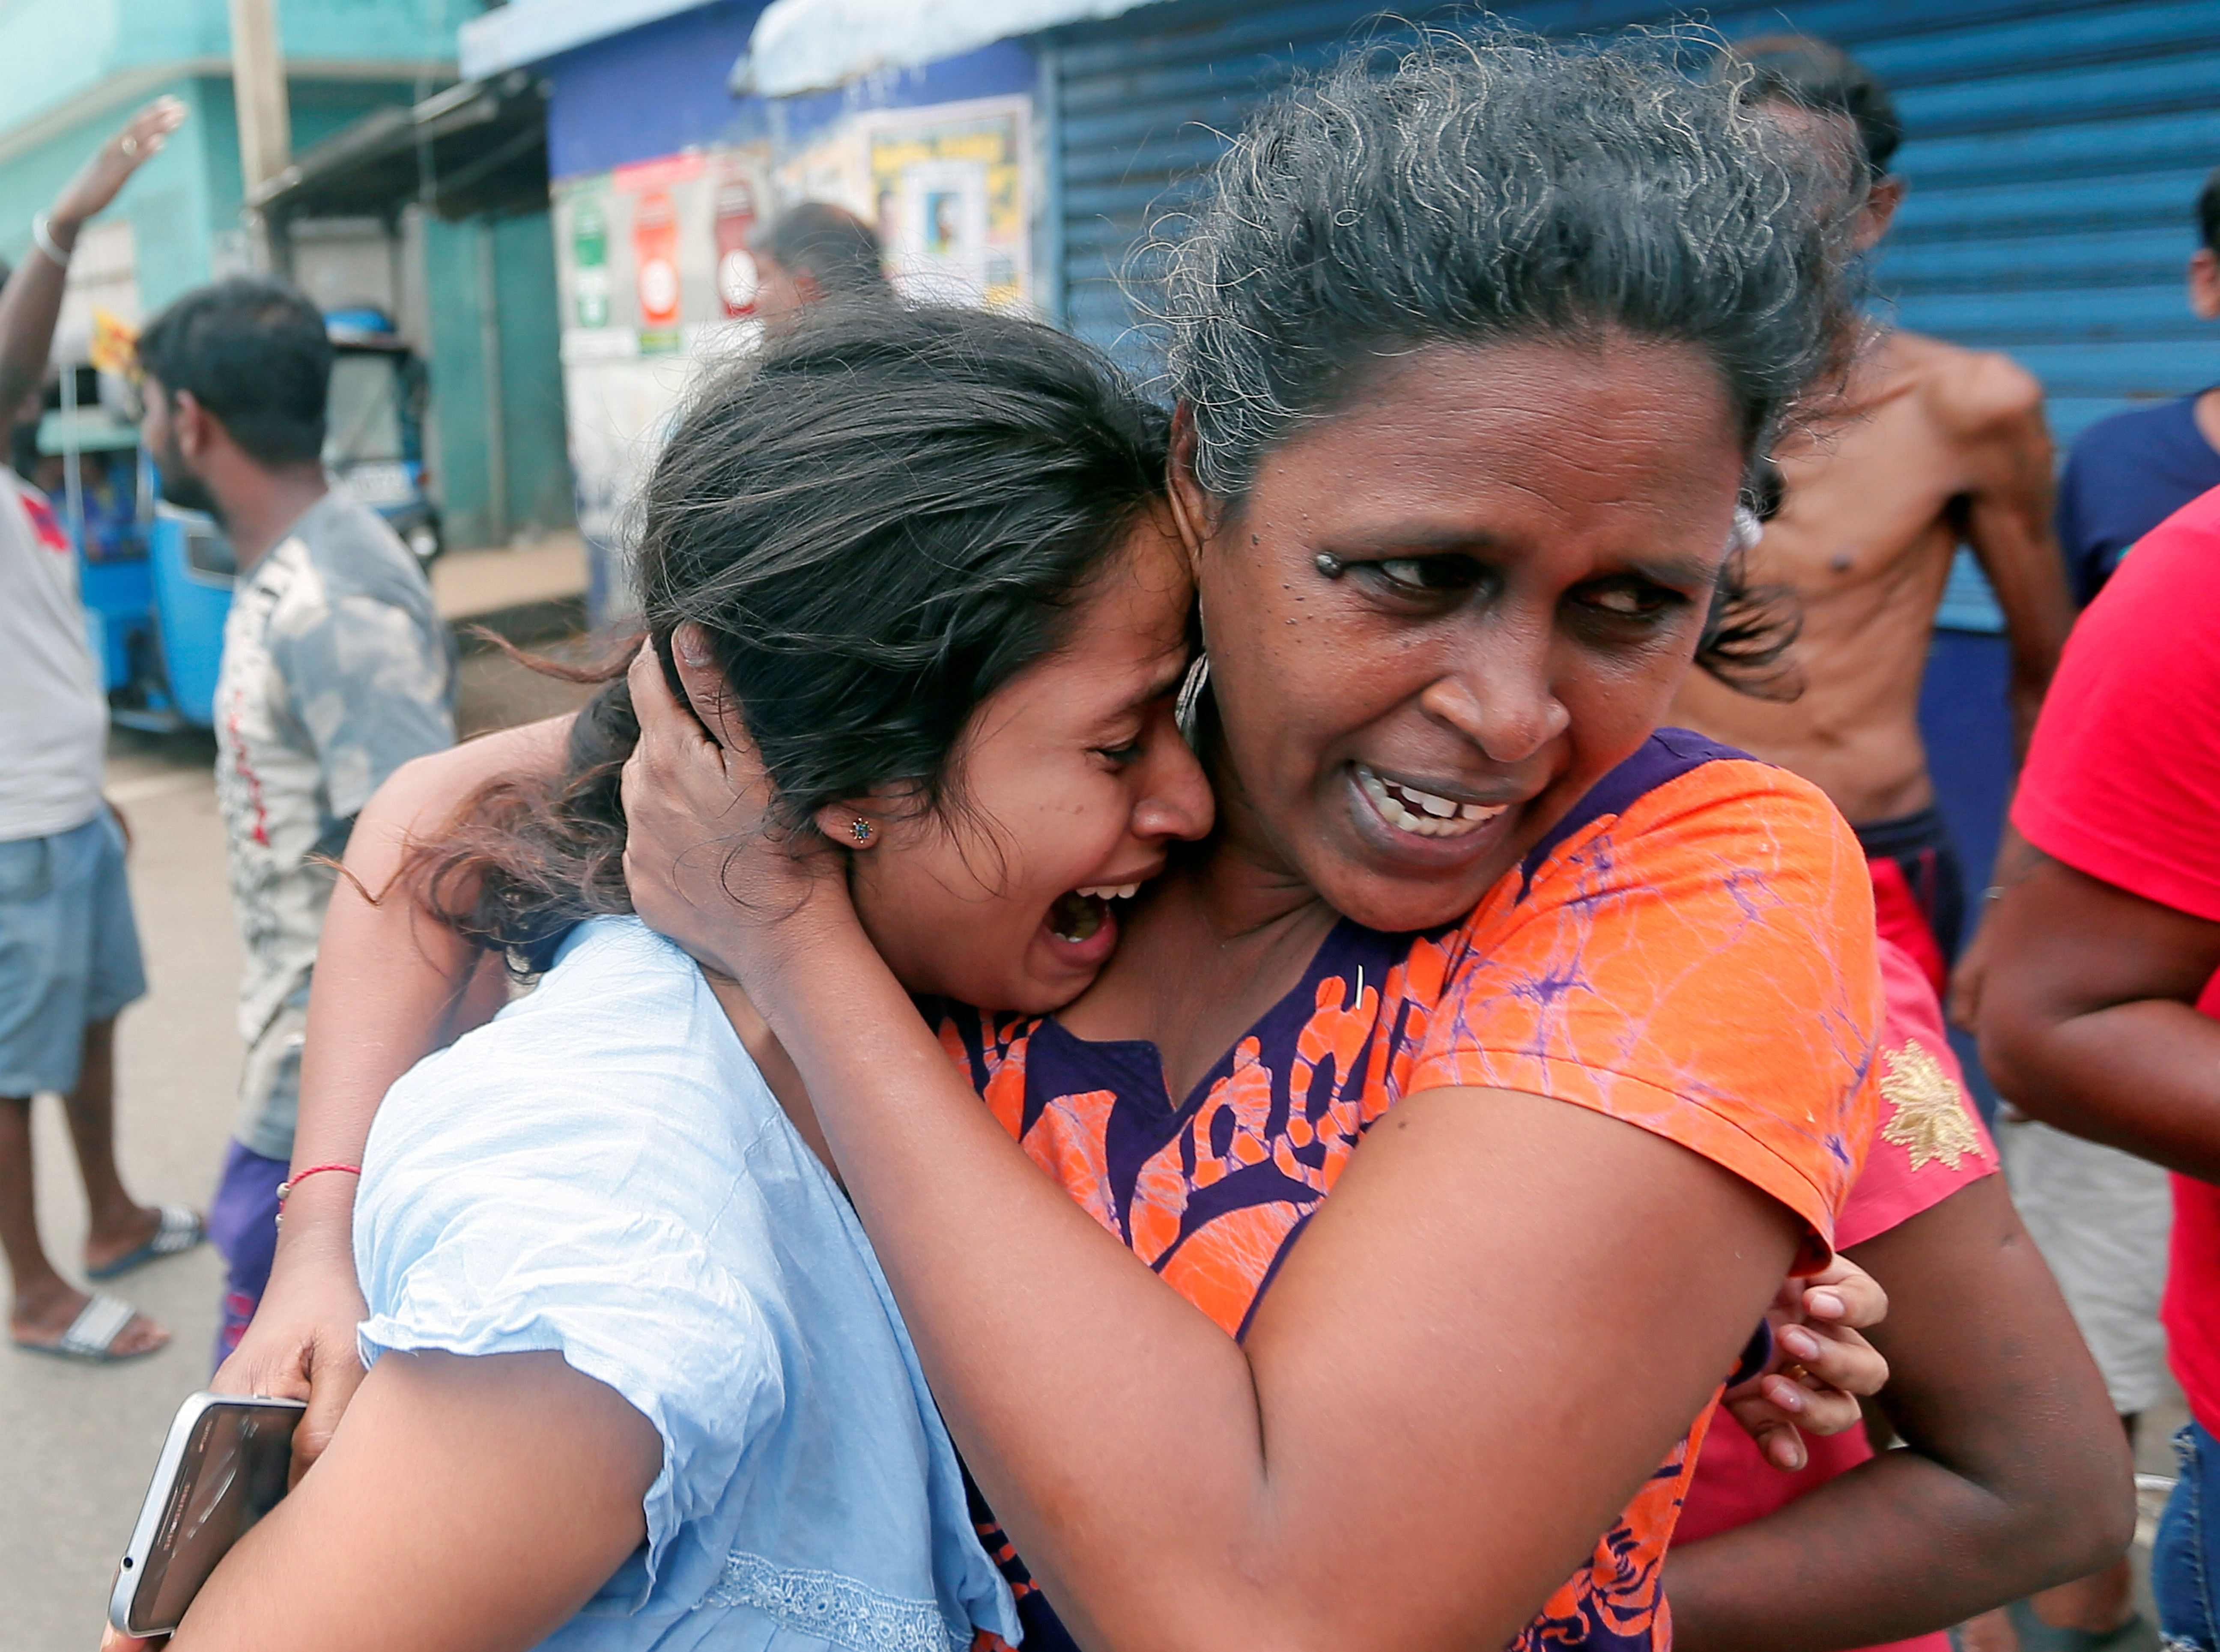 Sri Lanka suicide blasts: Islamic extremist group blamed for attack as government admits intelligence failings